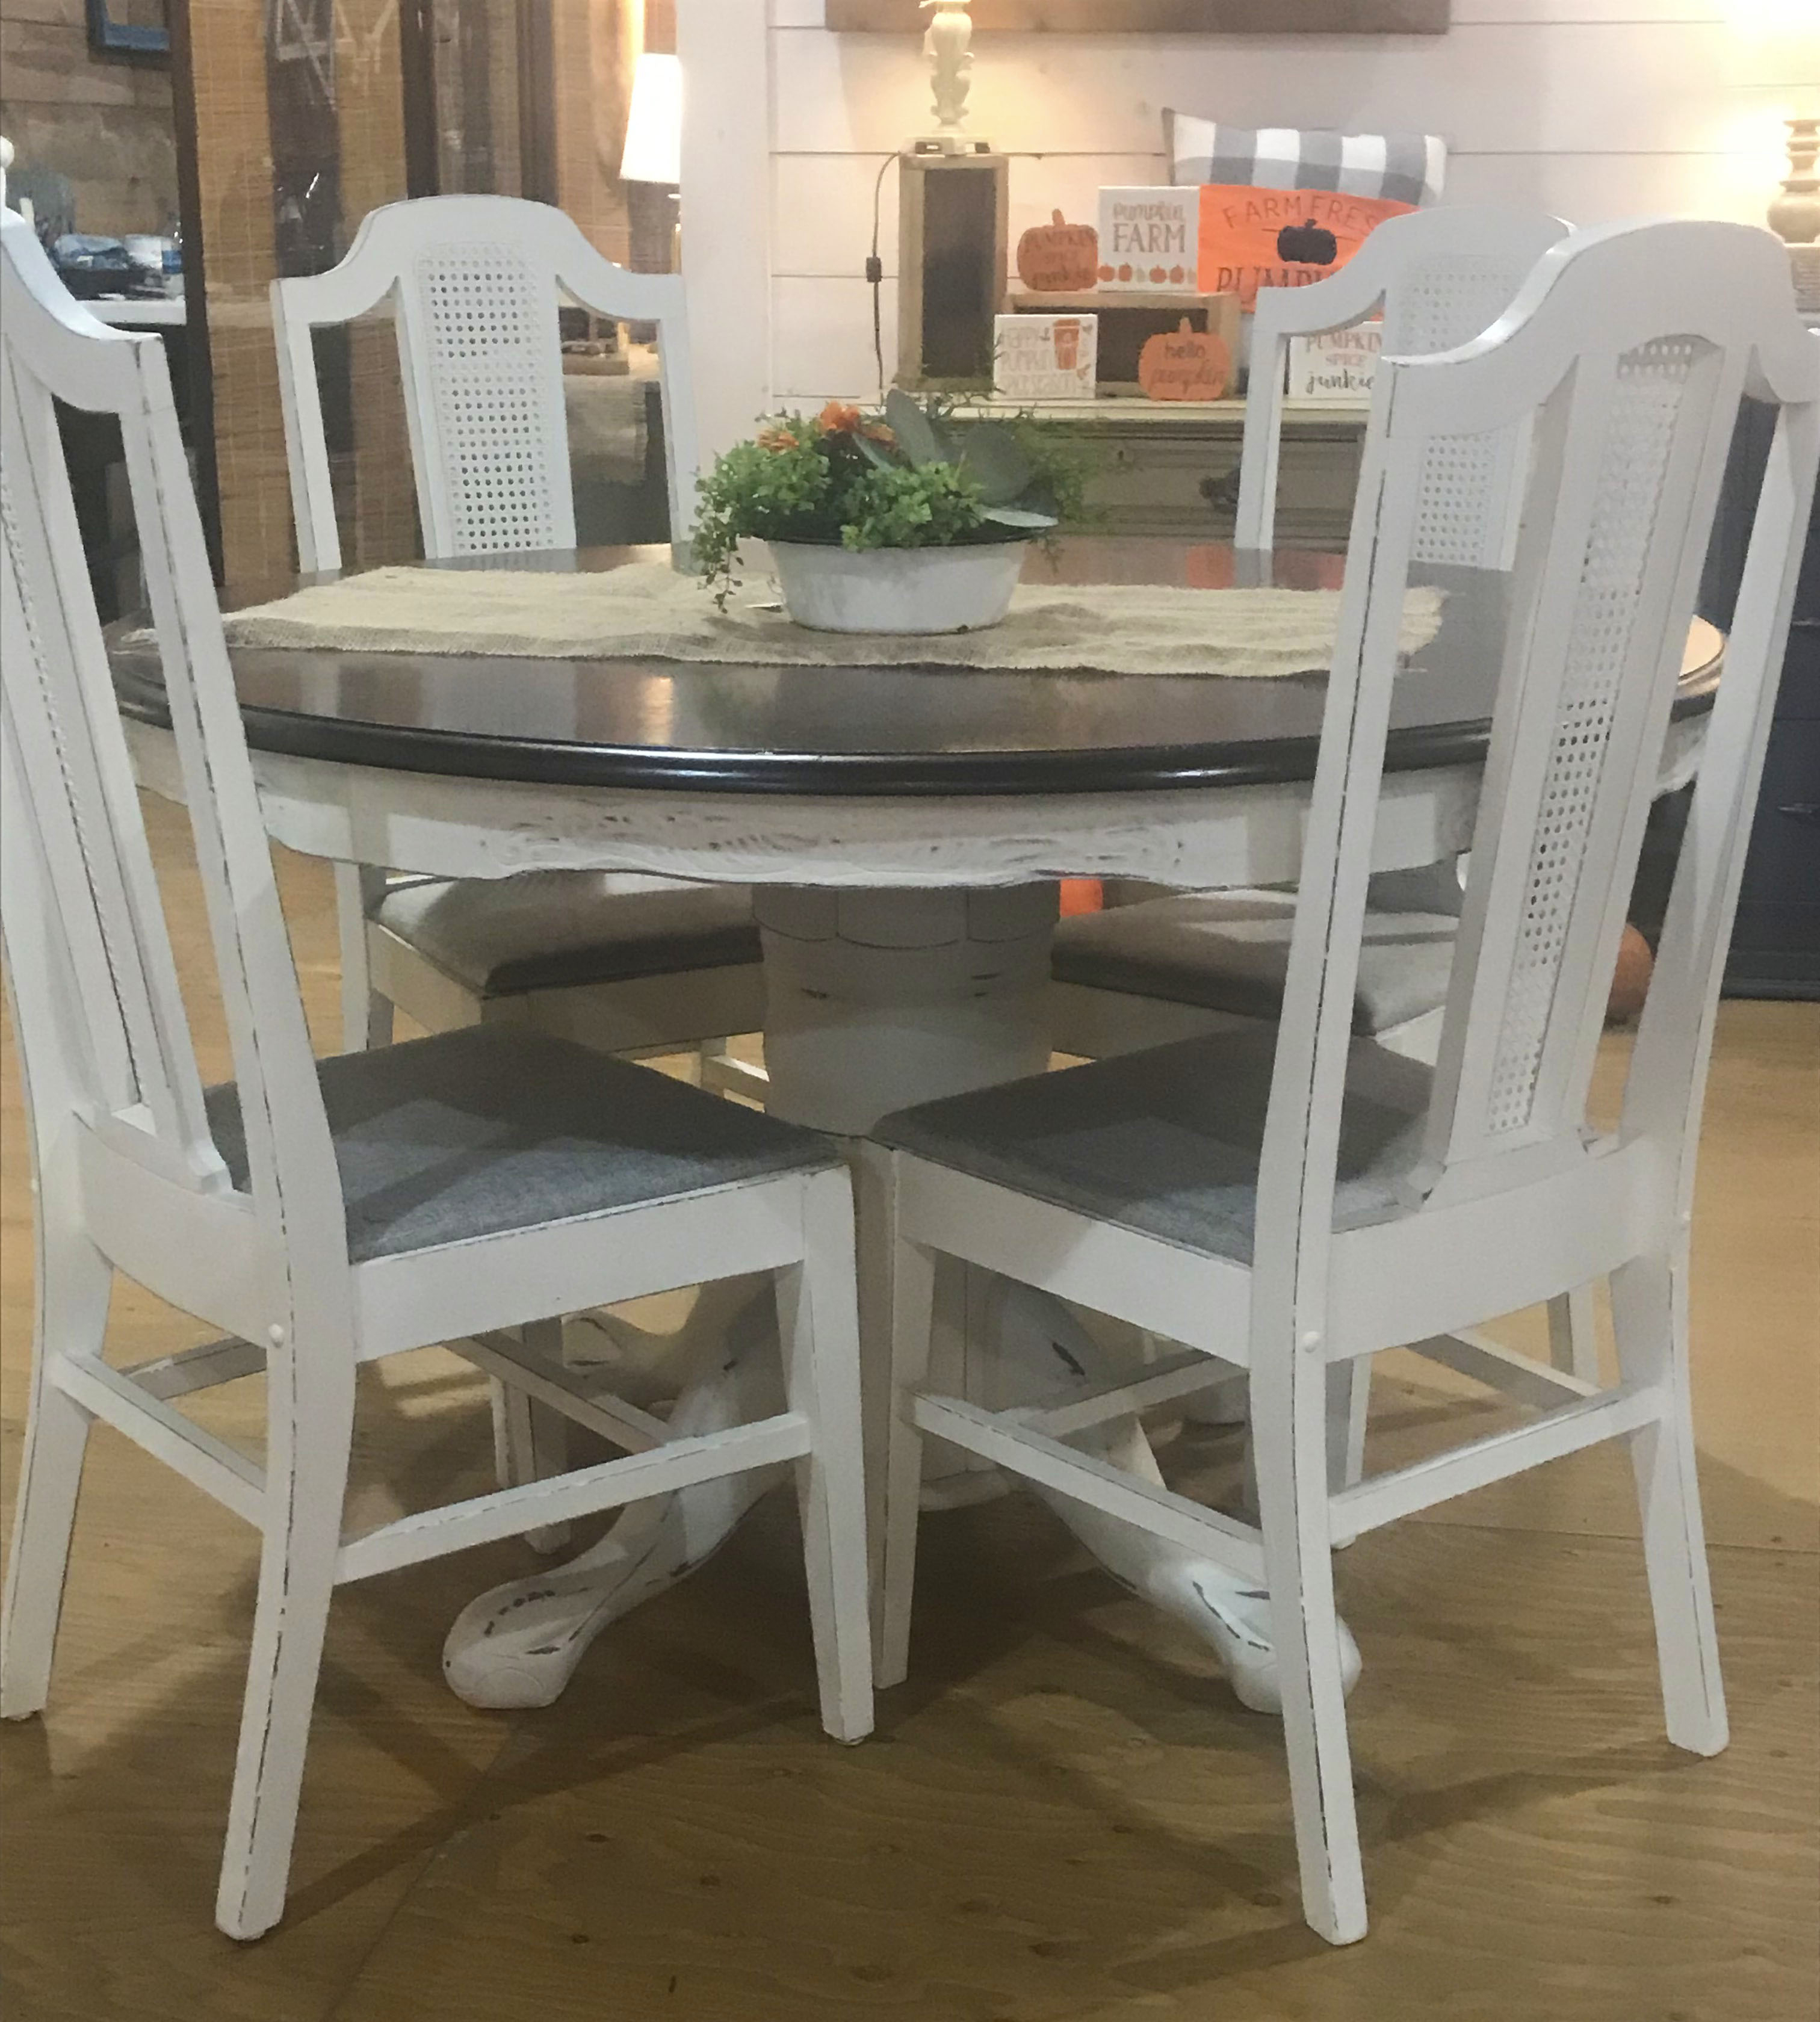 Reborn Home Furnishings | Items For Sale Within 2017 Falmer 3 Piece Solid Wood Dining Sets (Image 18 of 20)